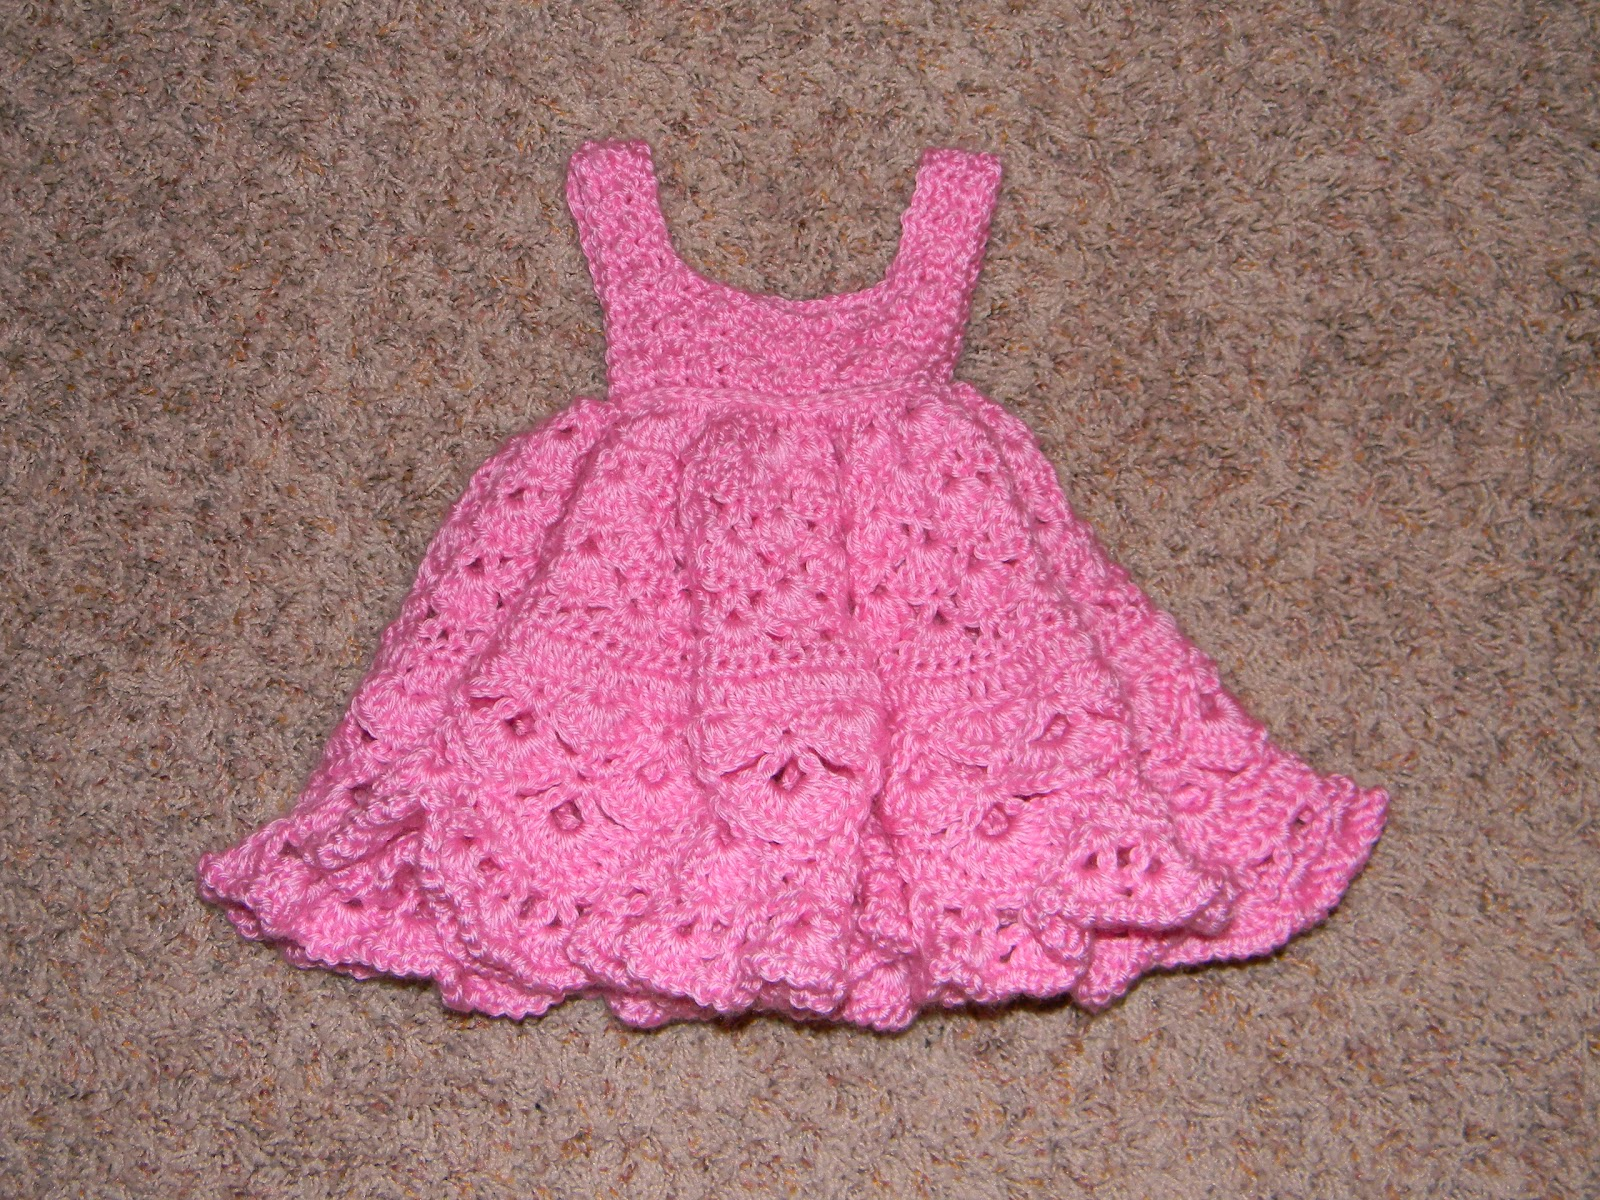 How To Crochet Baby Dress Pattern : Sassys Crafty Creations: Crochet Baby Girl Dress